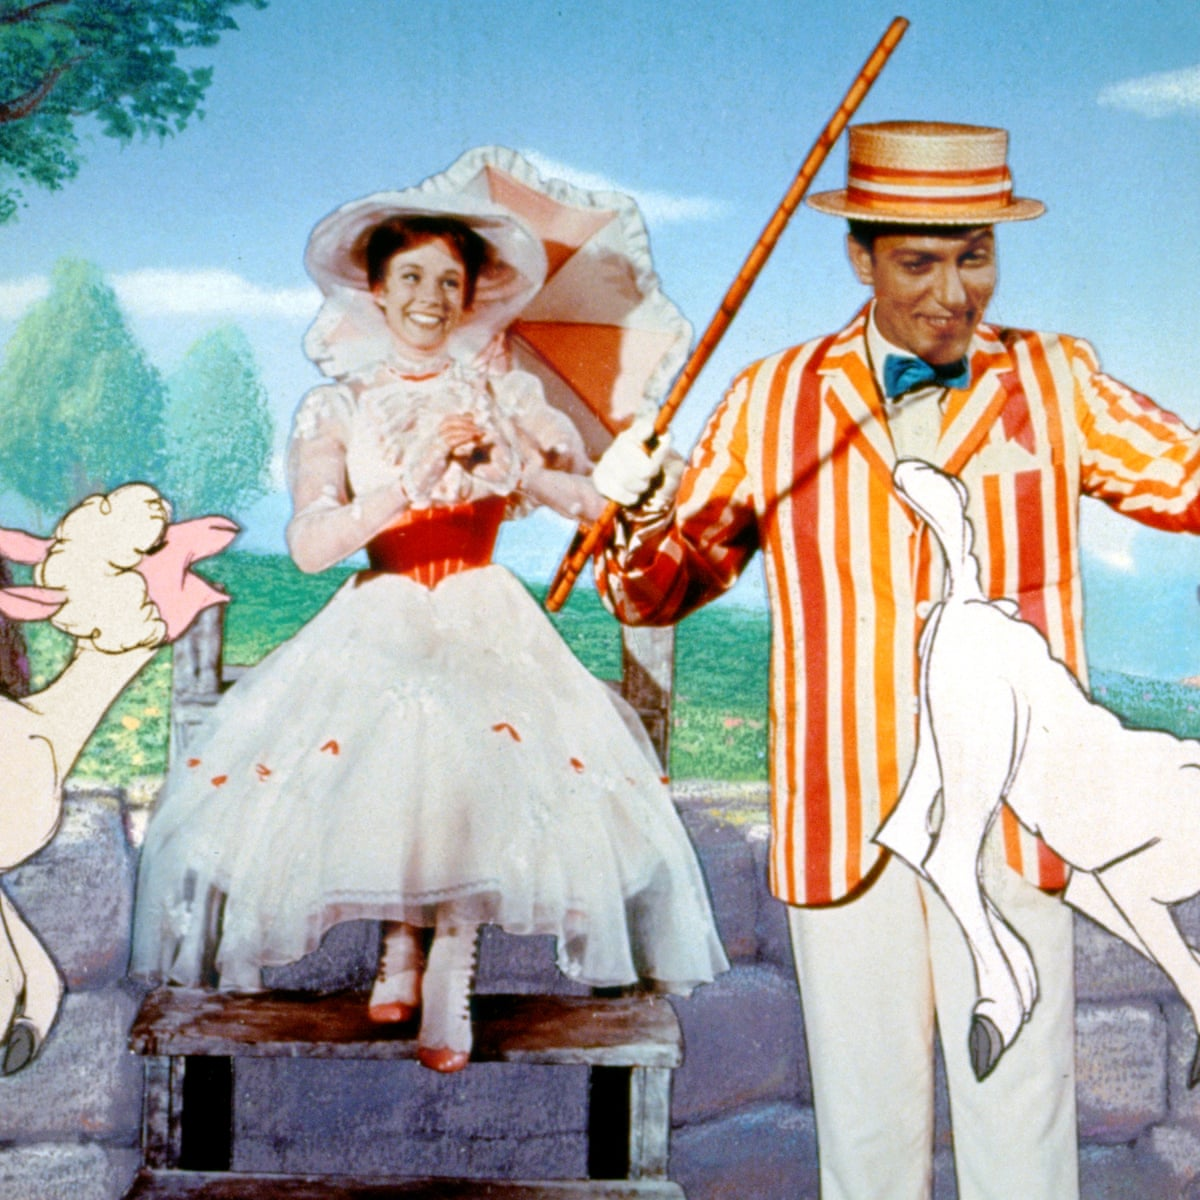 Mary Poppins Not Sugary But Sharp And Subversive On The Page And The Screen Film The Guardian